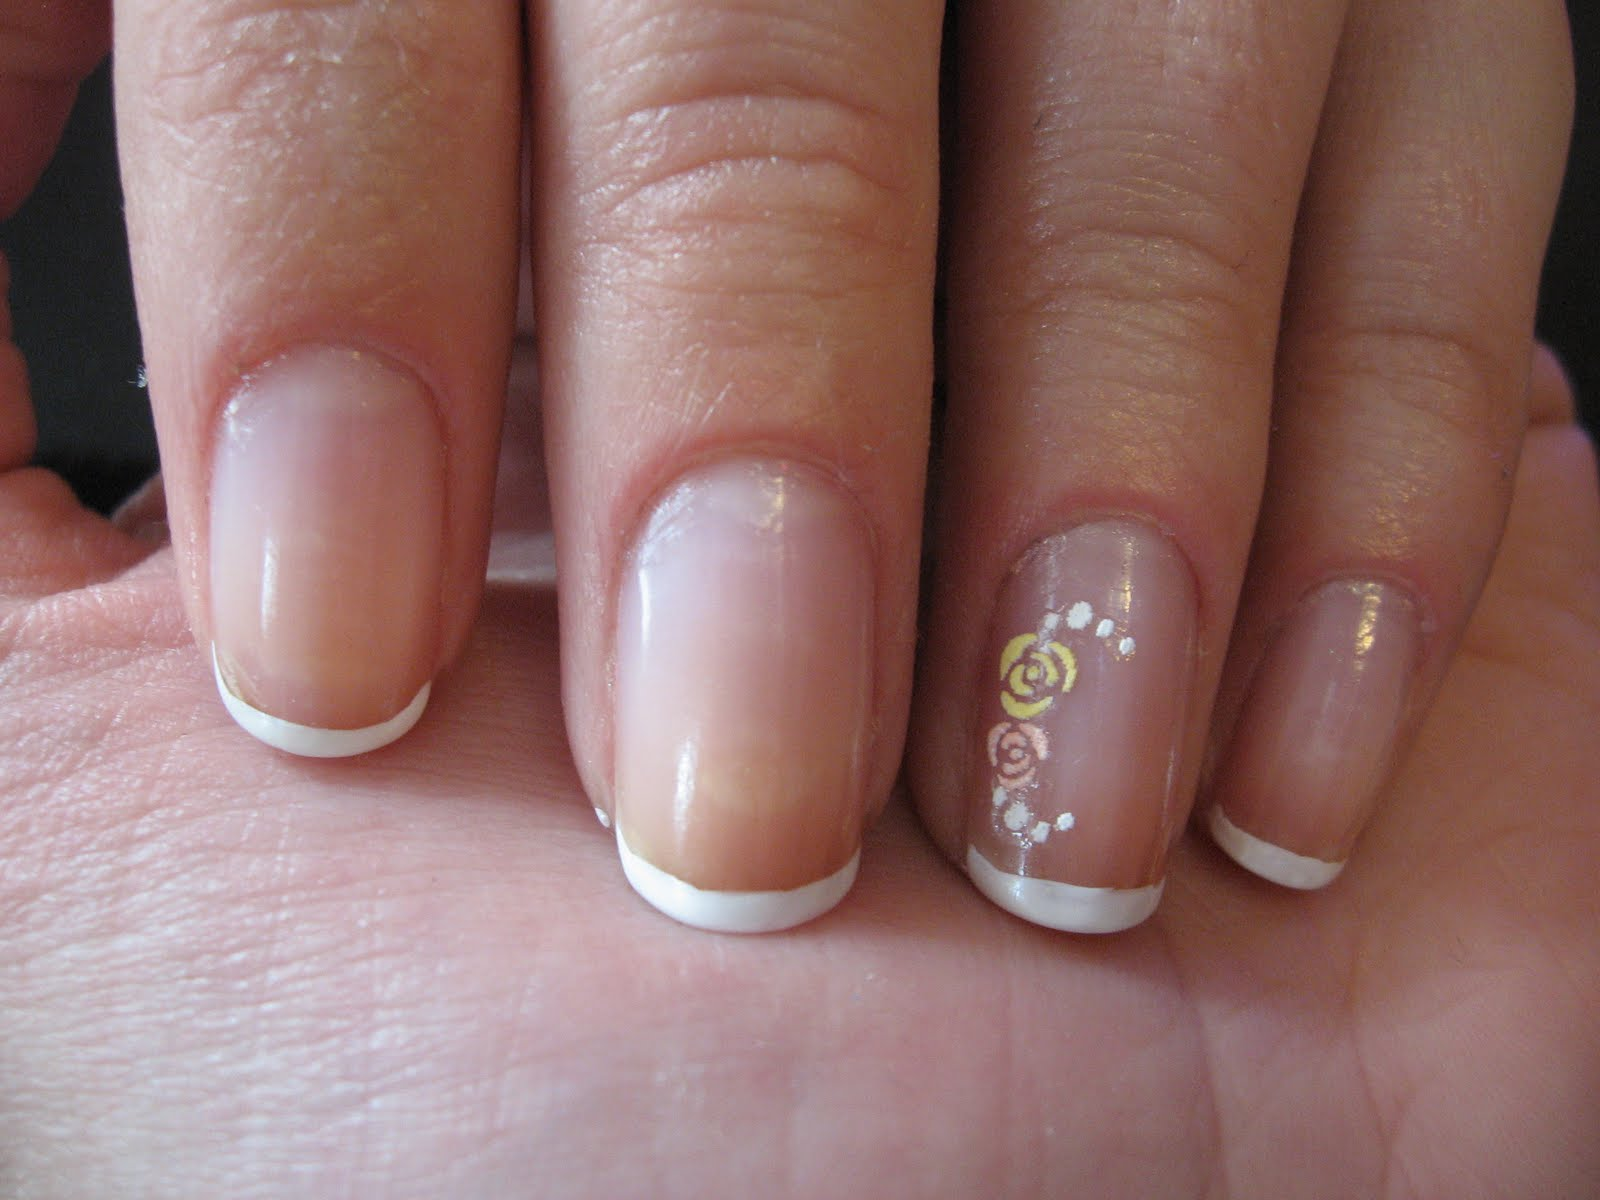 Homemade nails: Simple french manicure on short nails